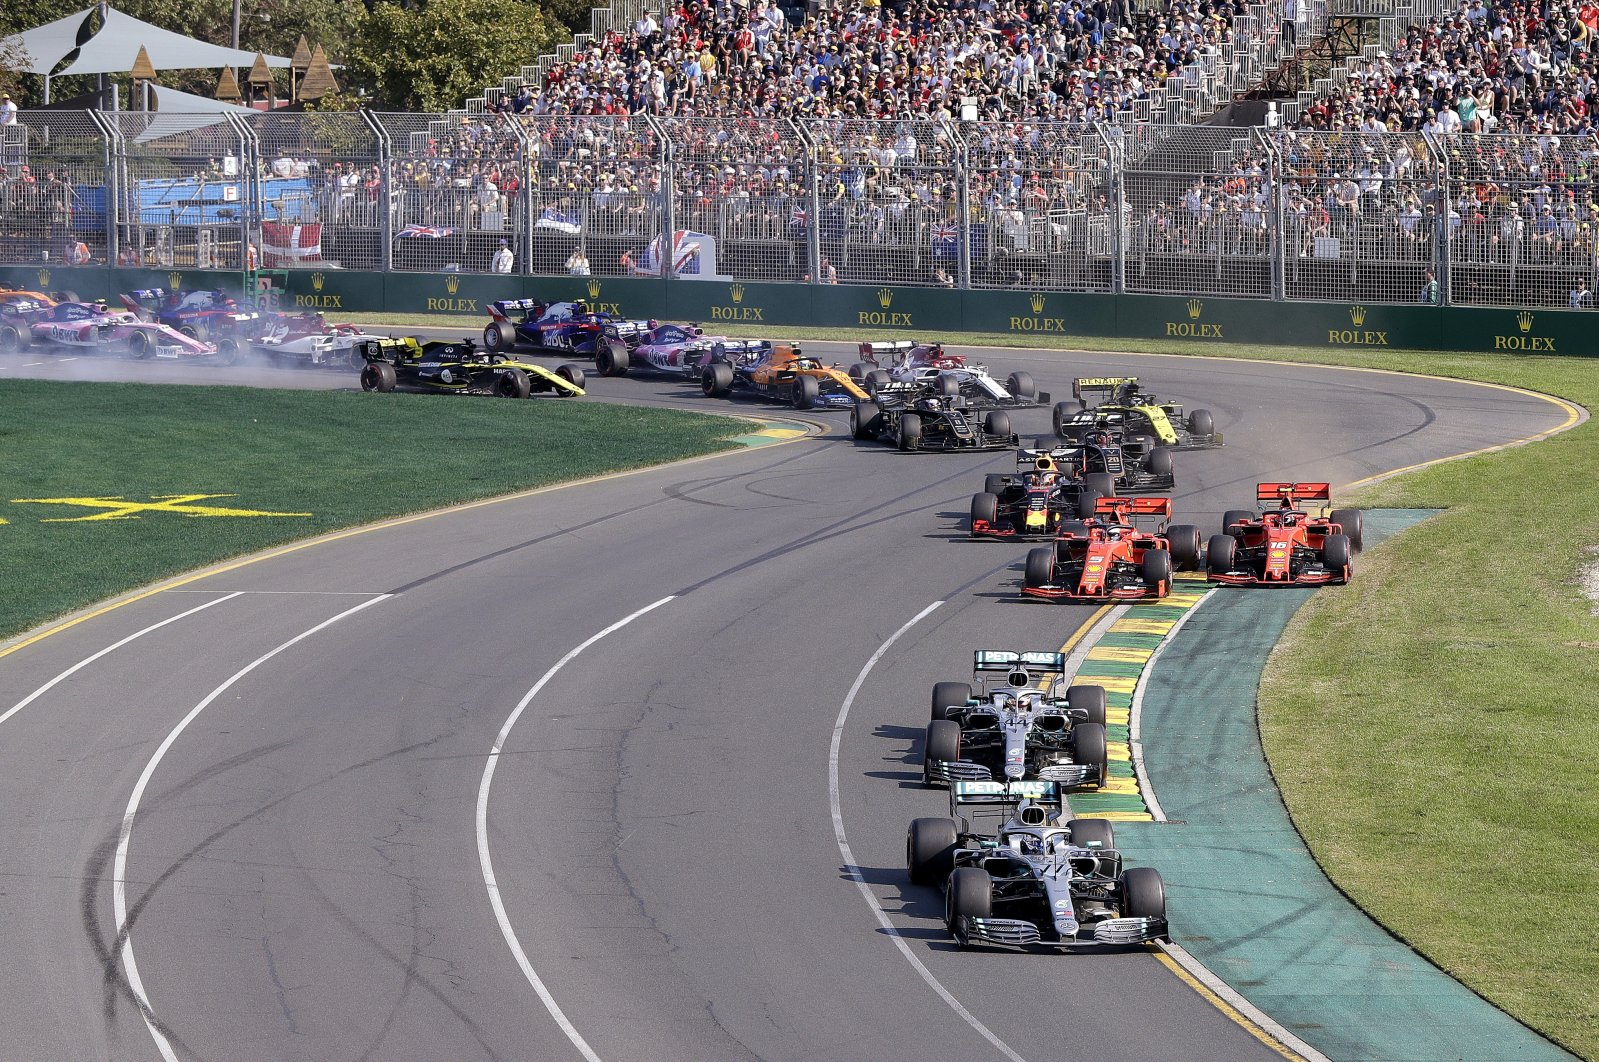 Mercedes driver Valtteri Bottas of Finland leads the rest of the pack during the start of the Australian Formula 1 Grand Prix in Melbourne, Australia, March 17, 2019. (AP Photo)